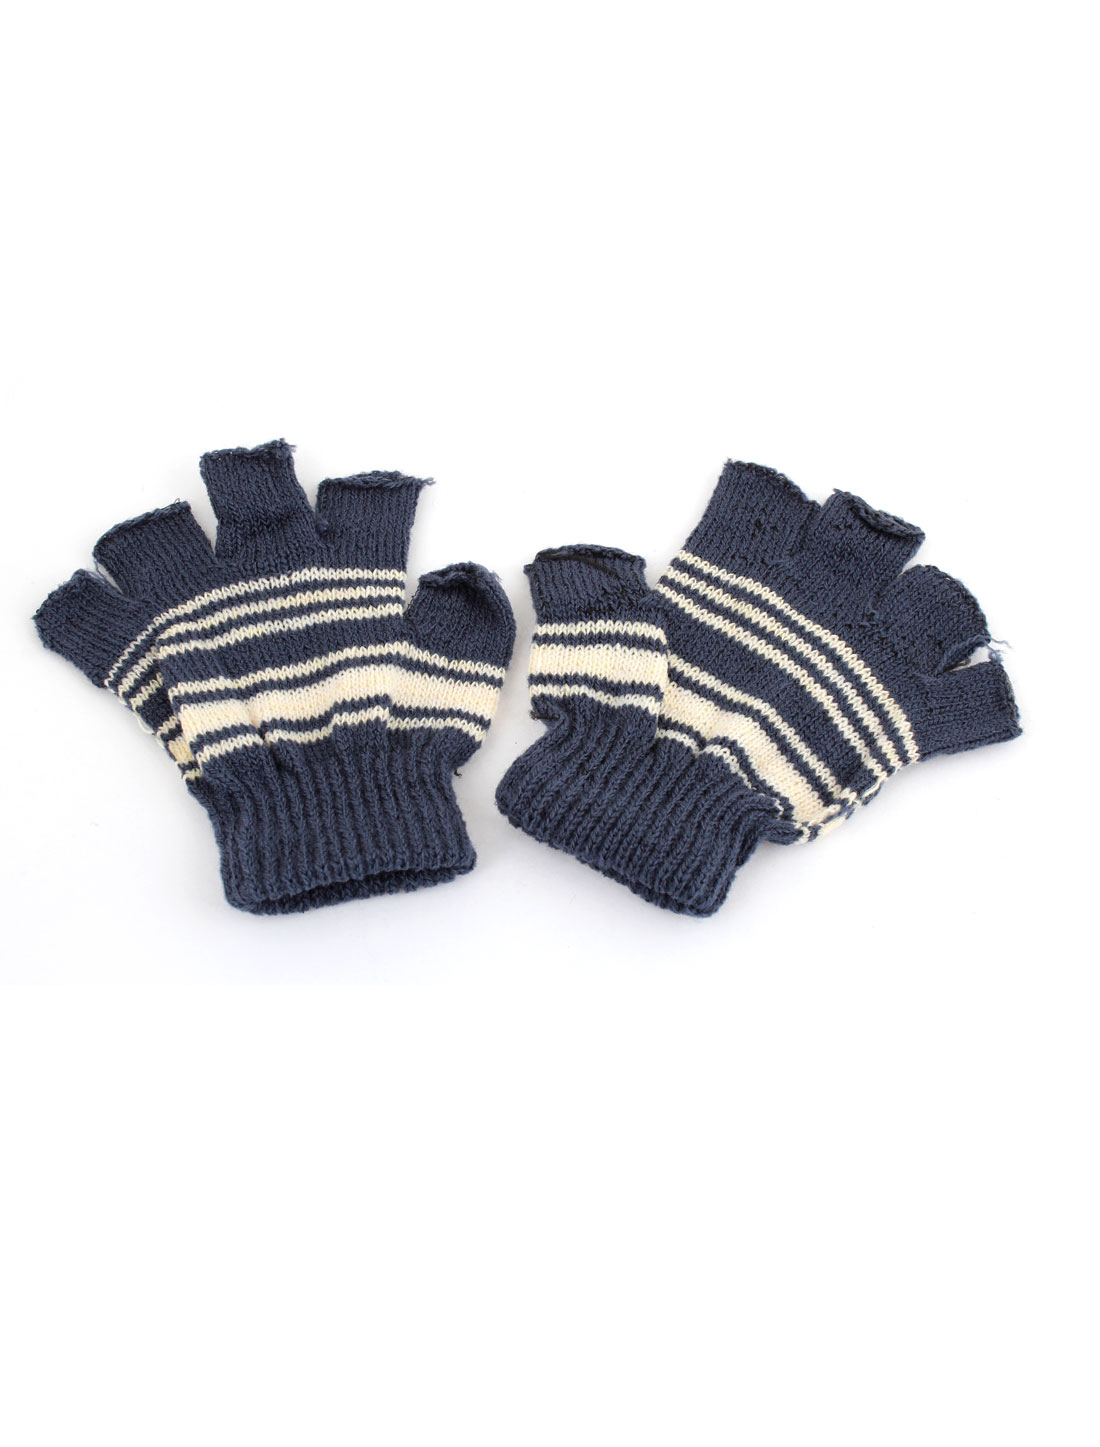 Child Dark Gray Acrylic Stripes Pattern Kintting Fingerless Gloves Pair